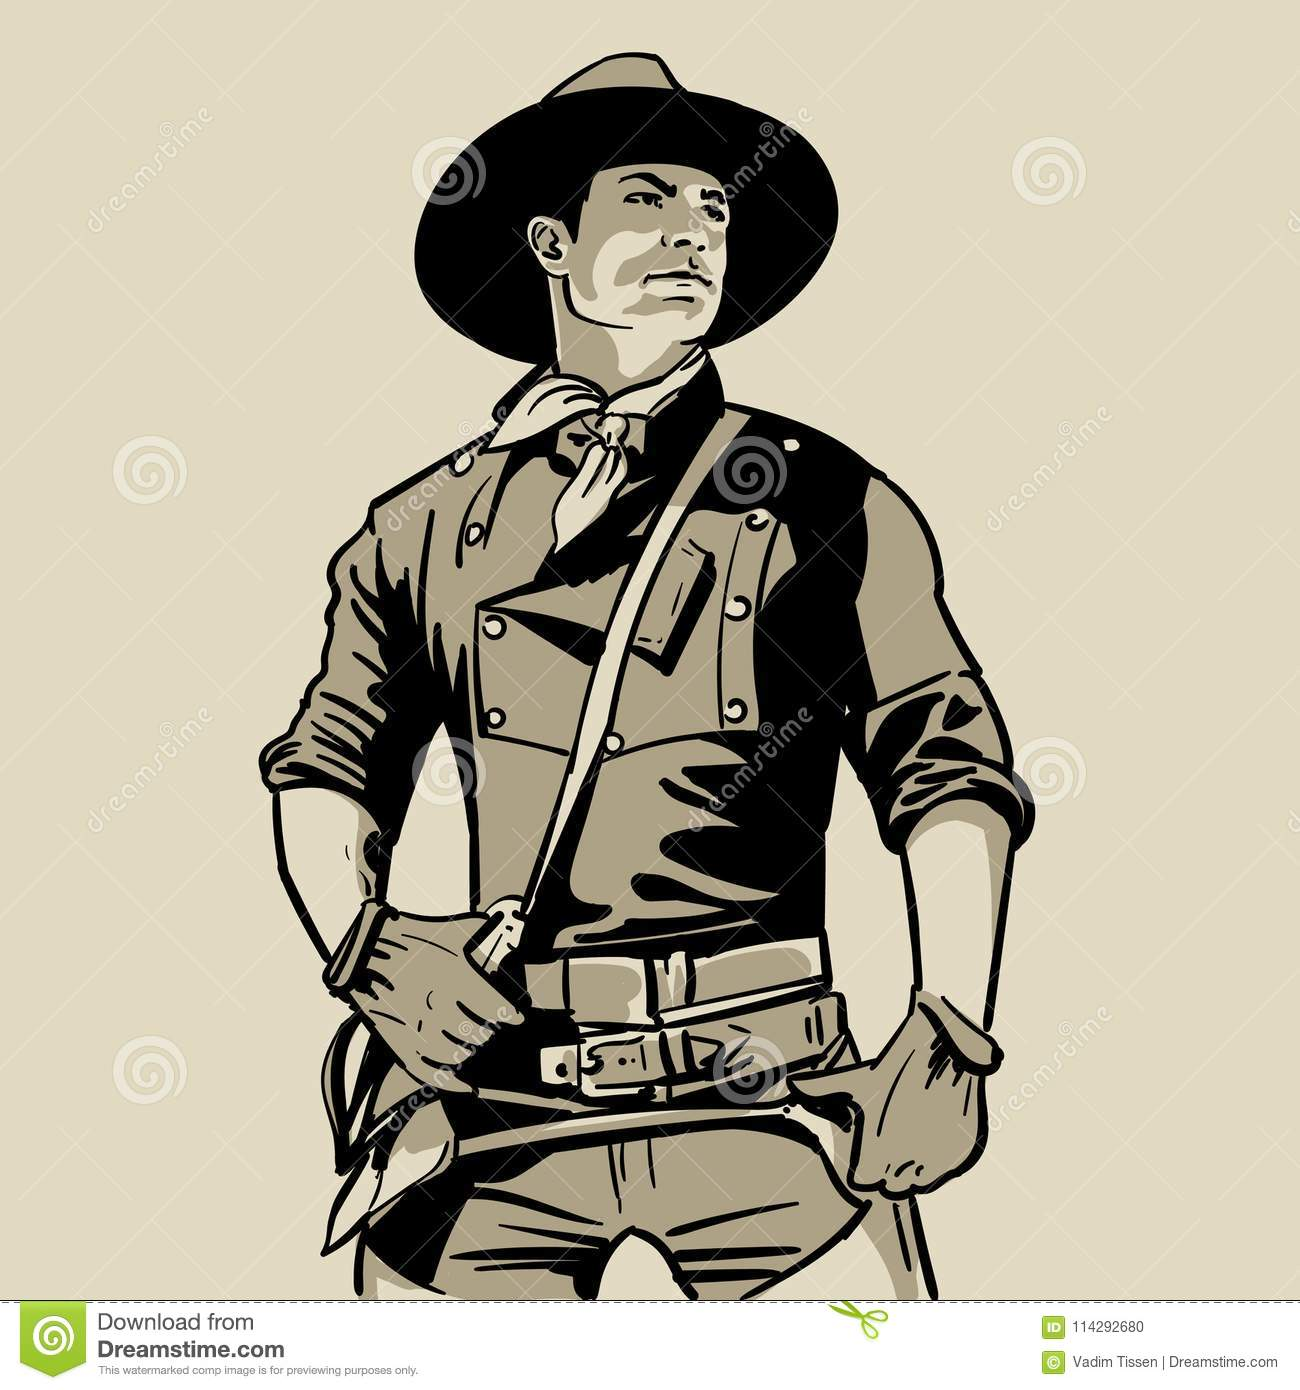 Man with cowboy hat and shirt and scarf. Western. Portrait. Digital Sketch Hand Drawing. Illustration.